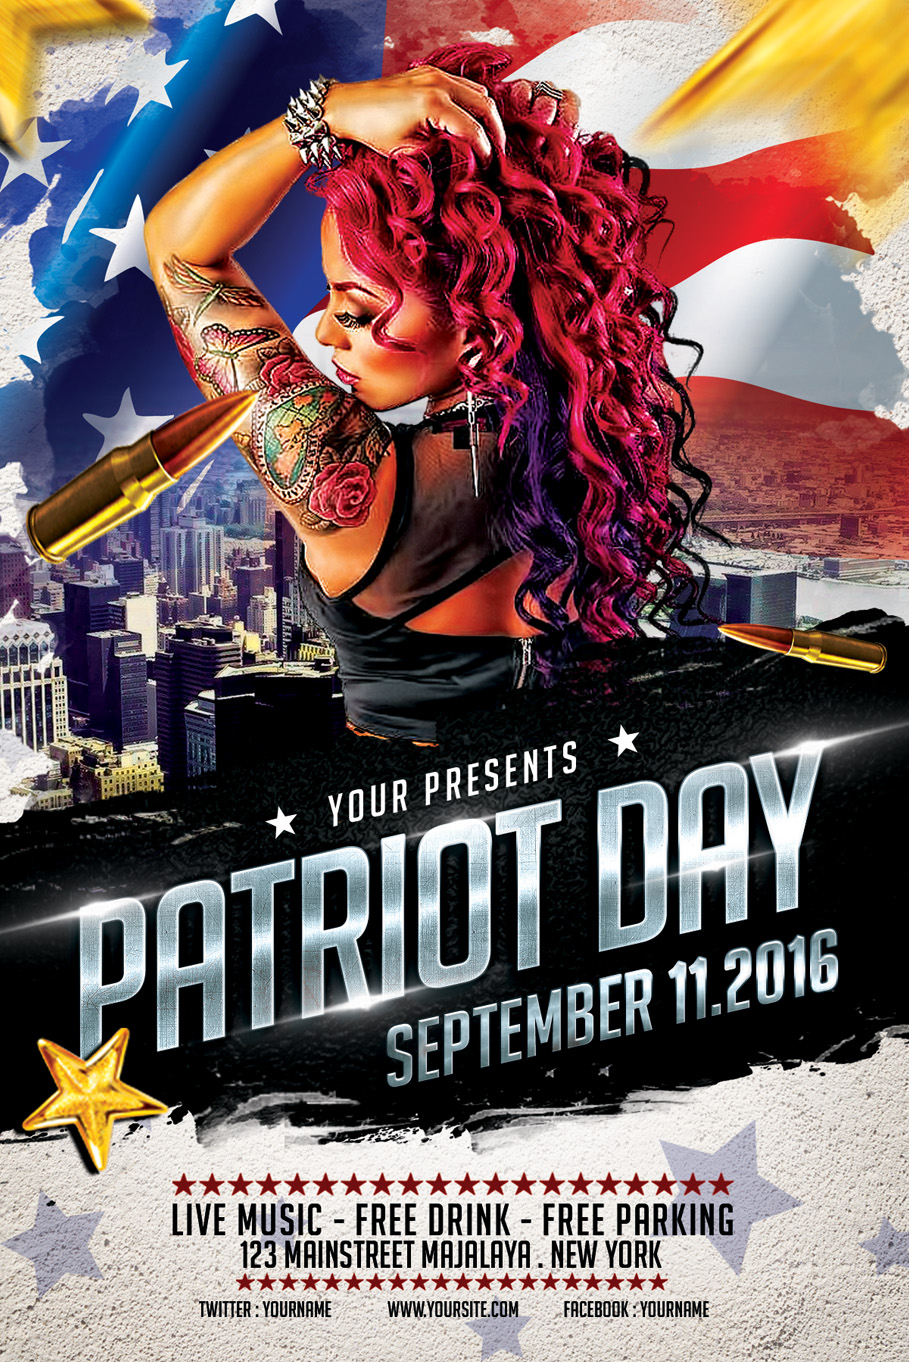 StyleWish 6 0 Patriot Day Flyer Template By Ayumadesign